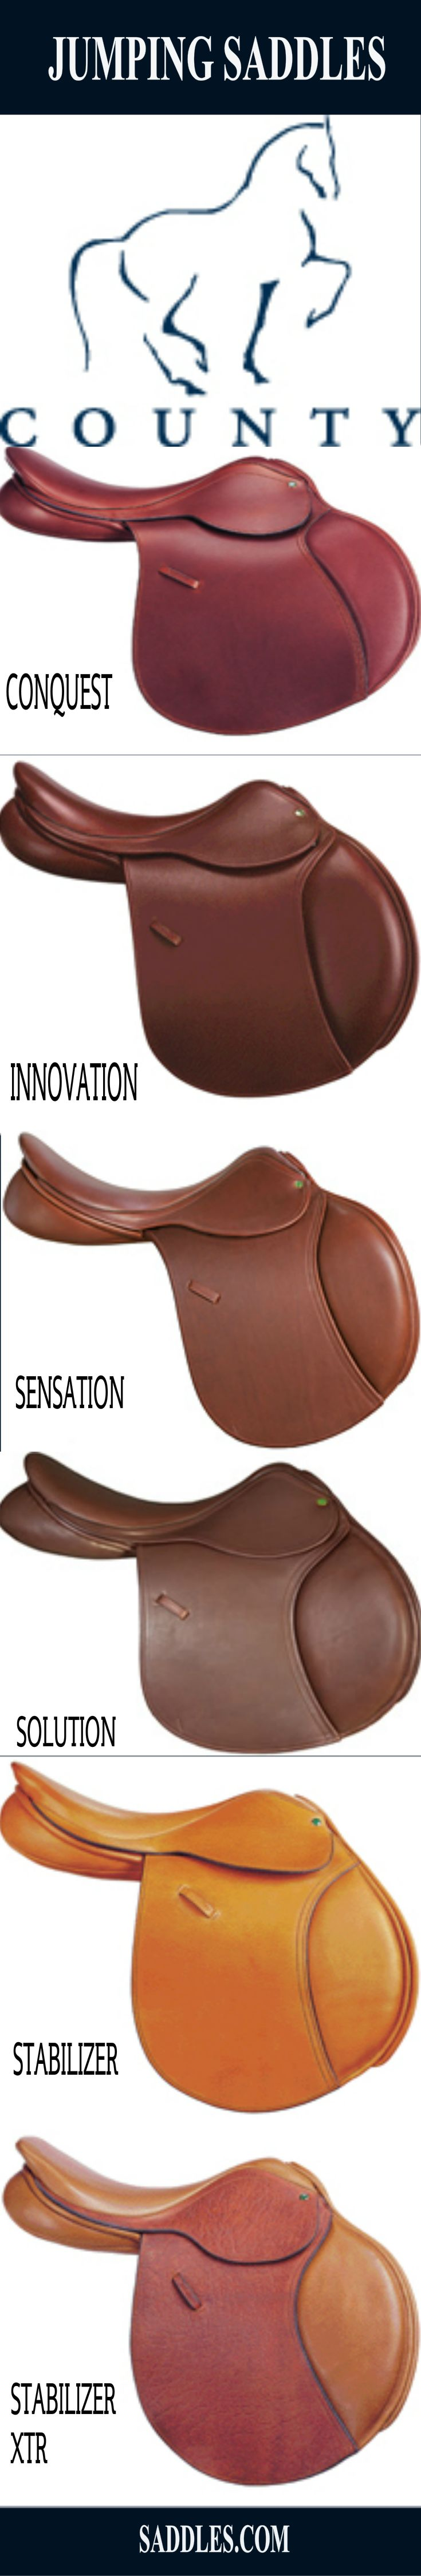 Jumping Saddles For Sale! #jumpingsaddles